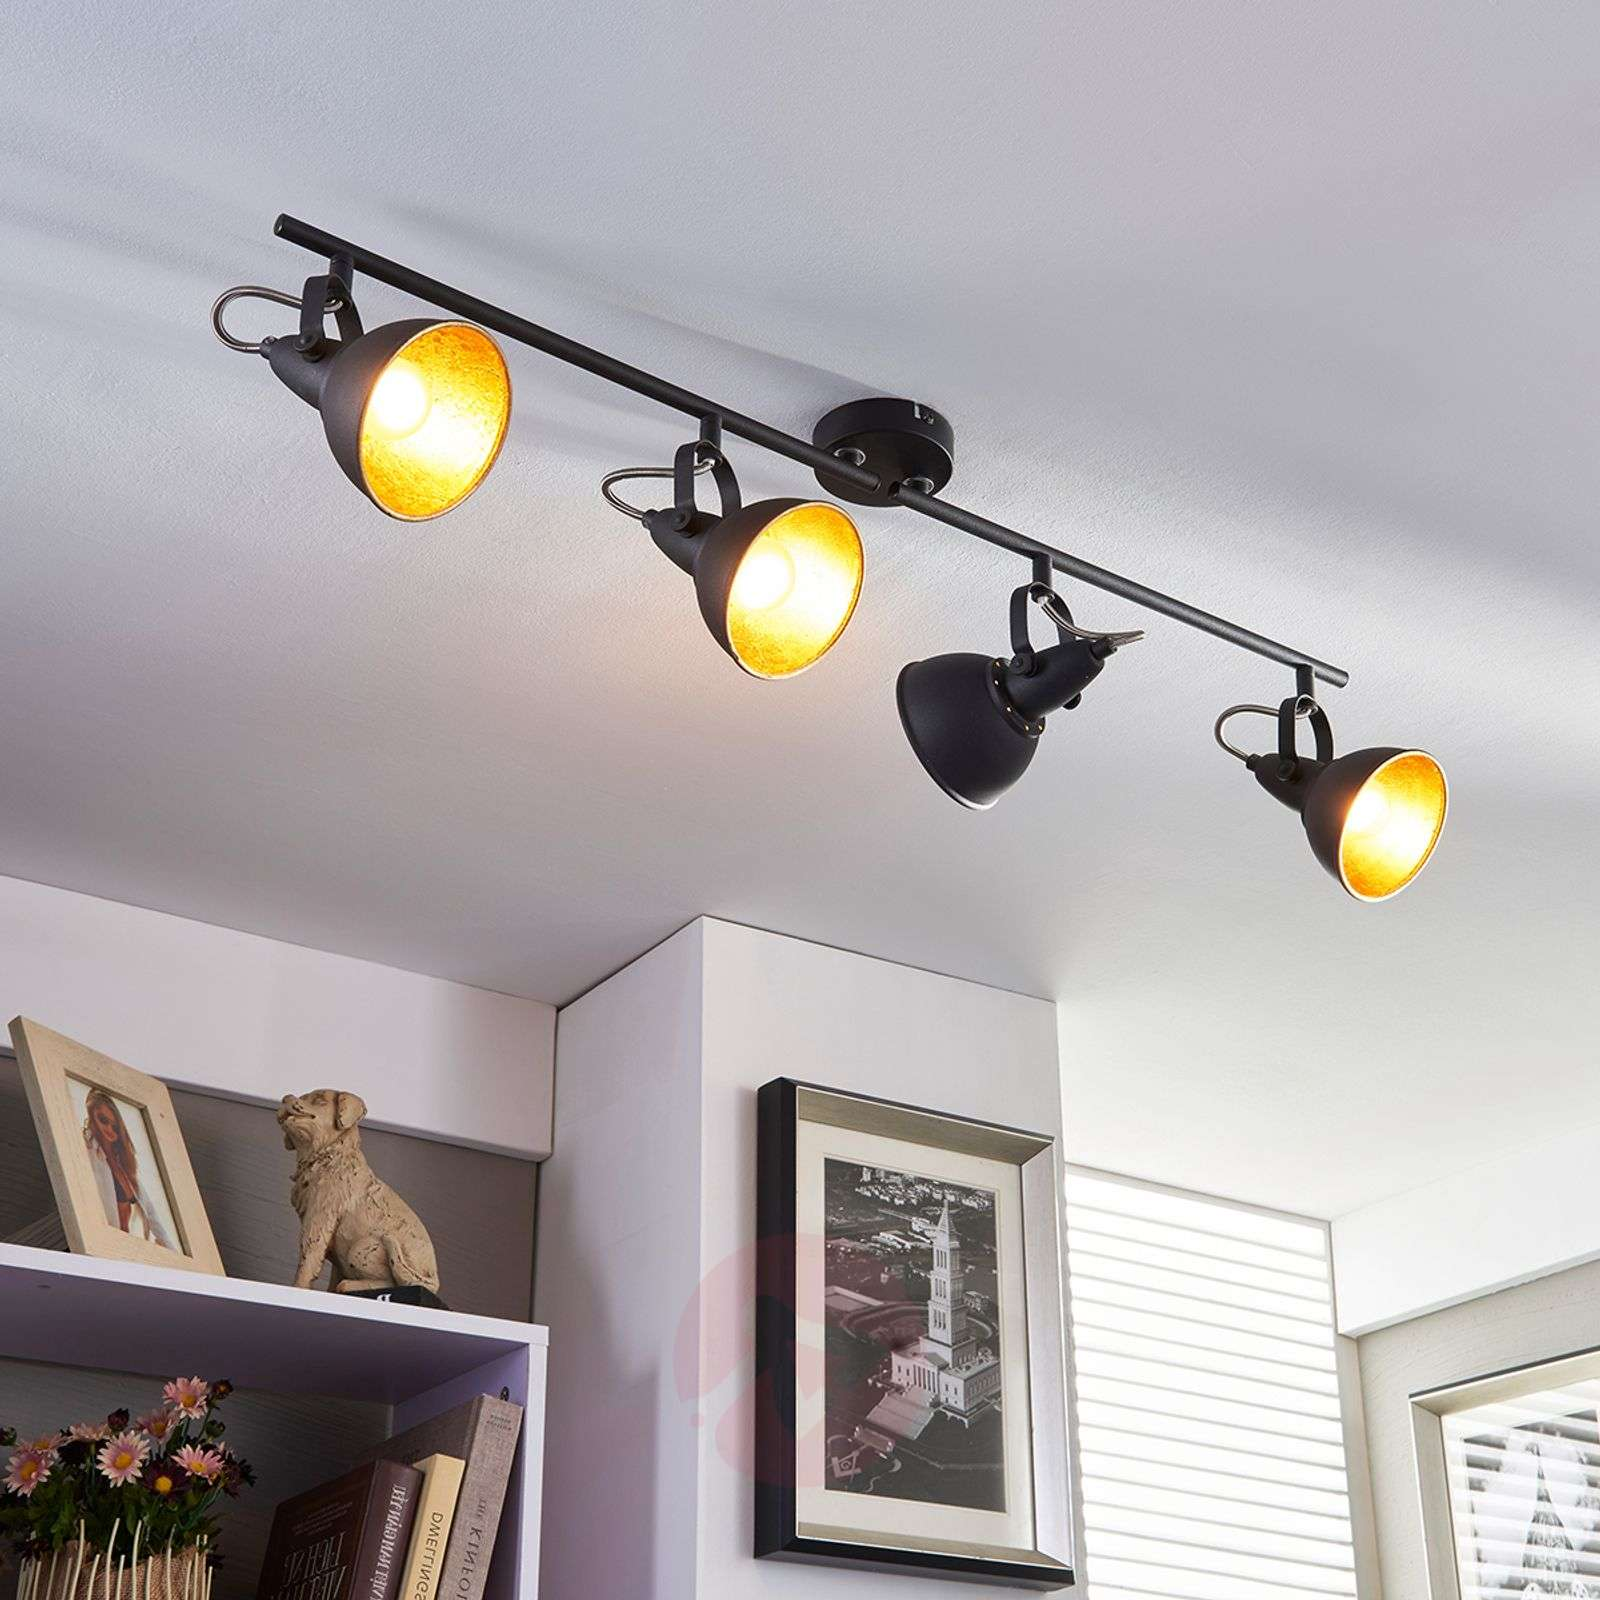 Black And Golden Kitchen Spotlight Julin Bulbs Lightscouk - Black kitchen spotlights